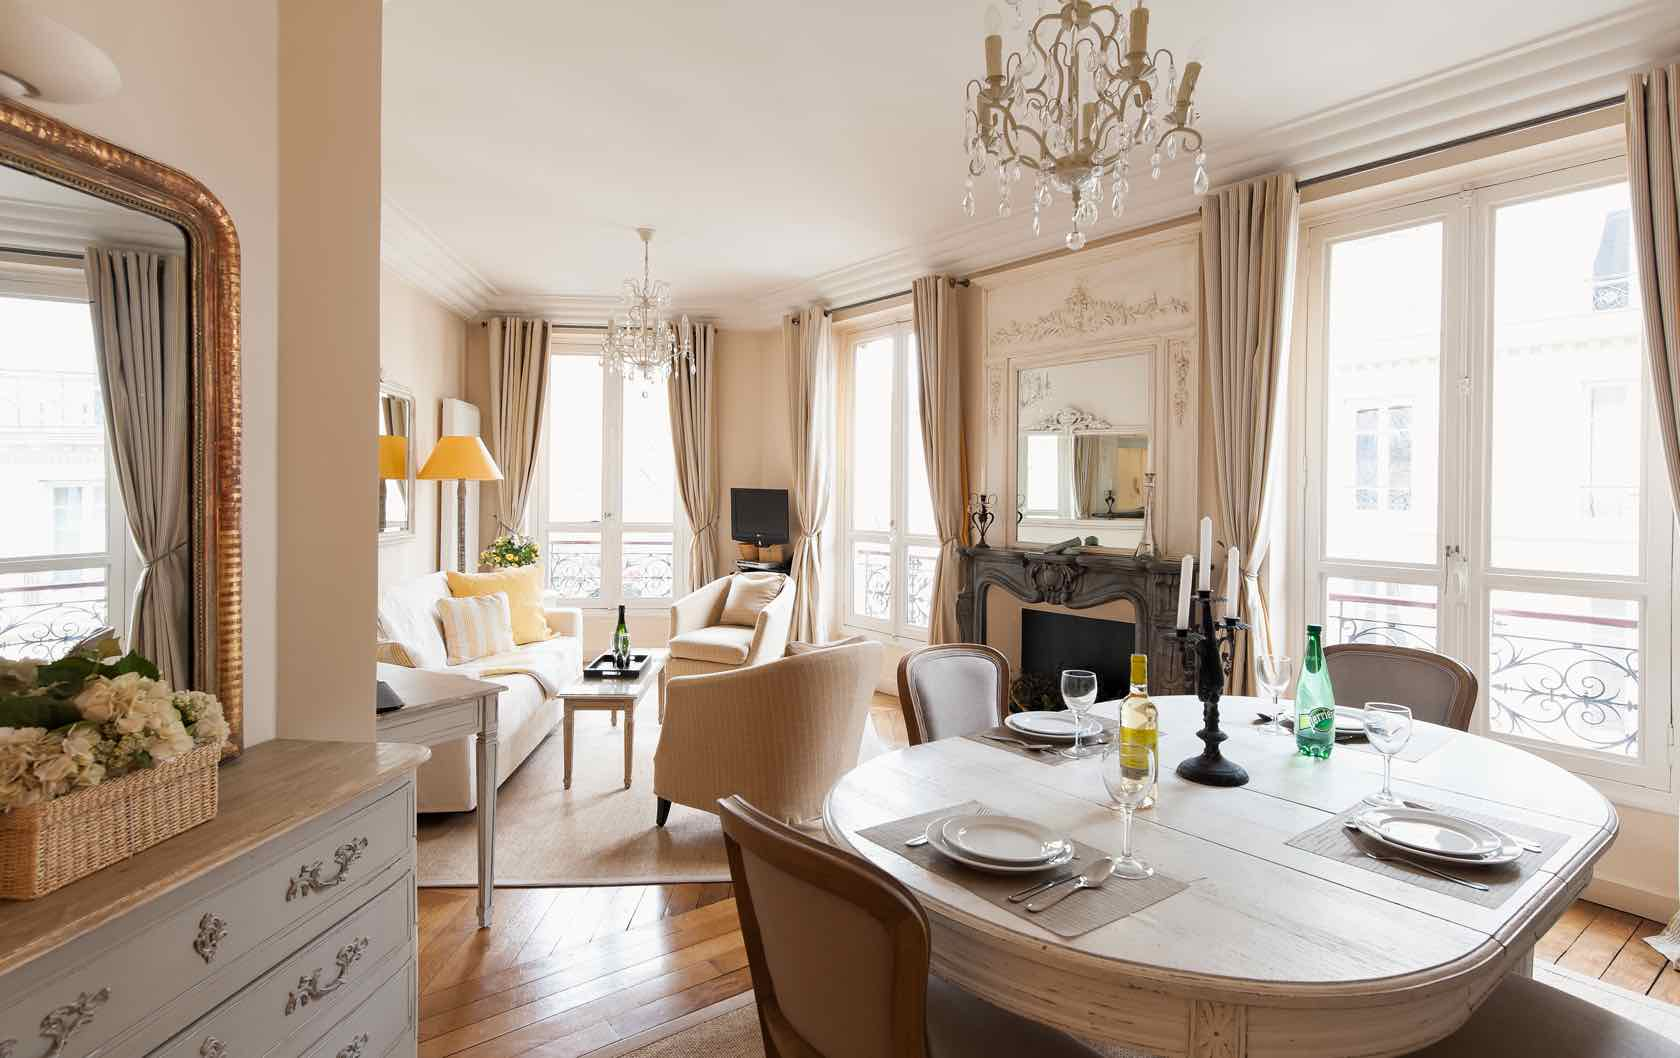 See our Long-Term Furnished Rentals in Paris by Paris Perfect Cotes du Rhone